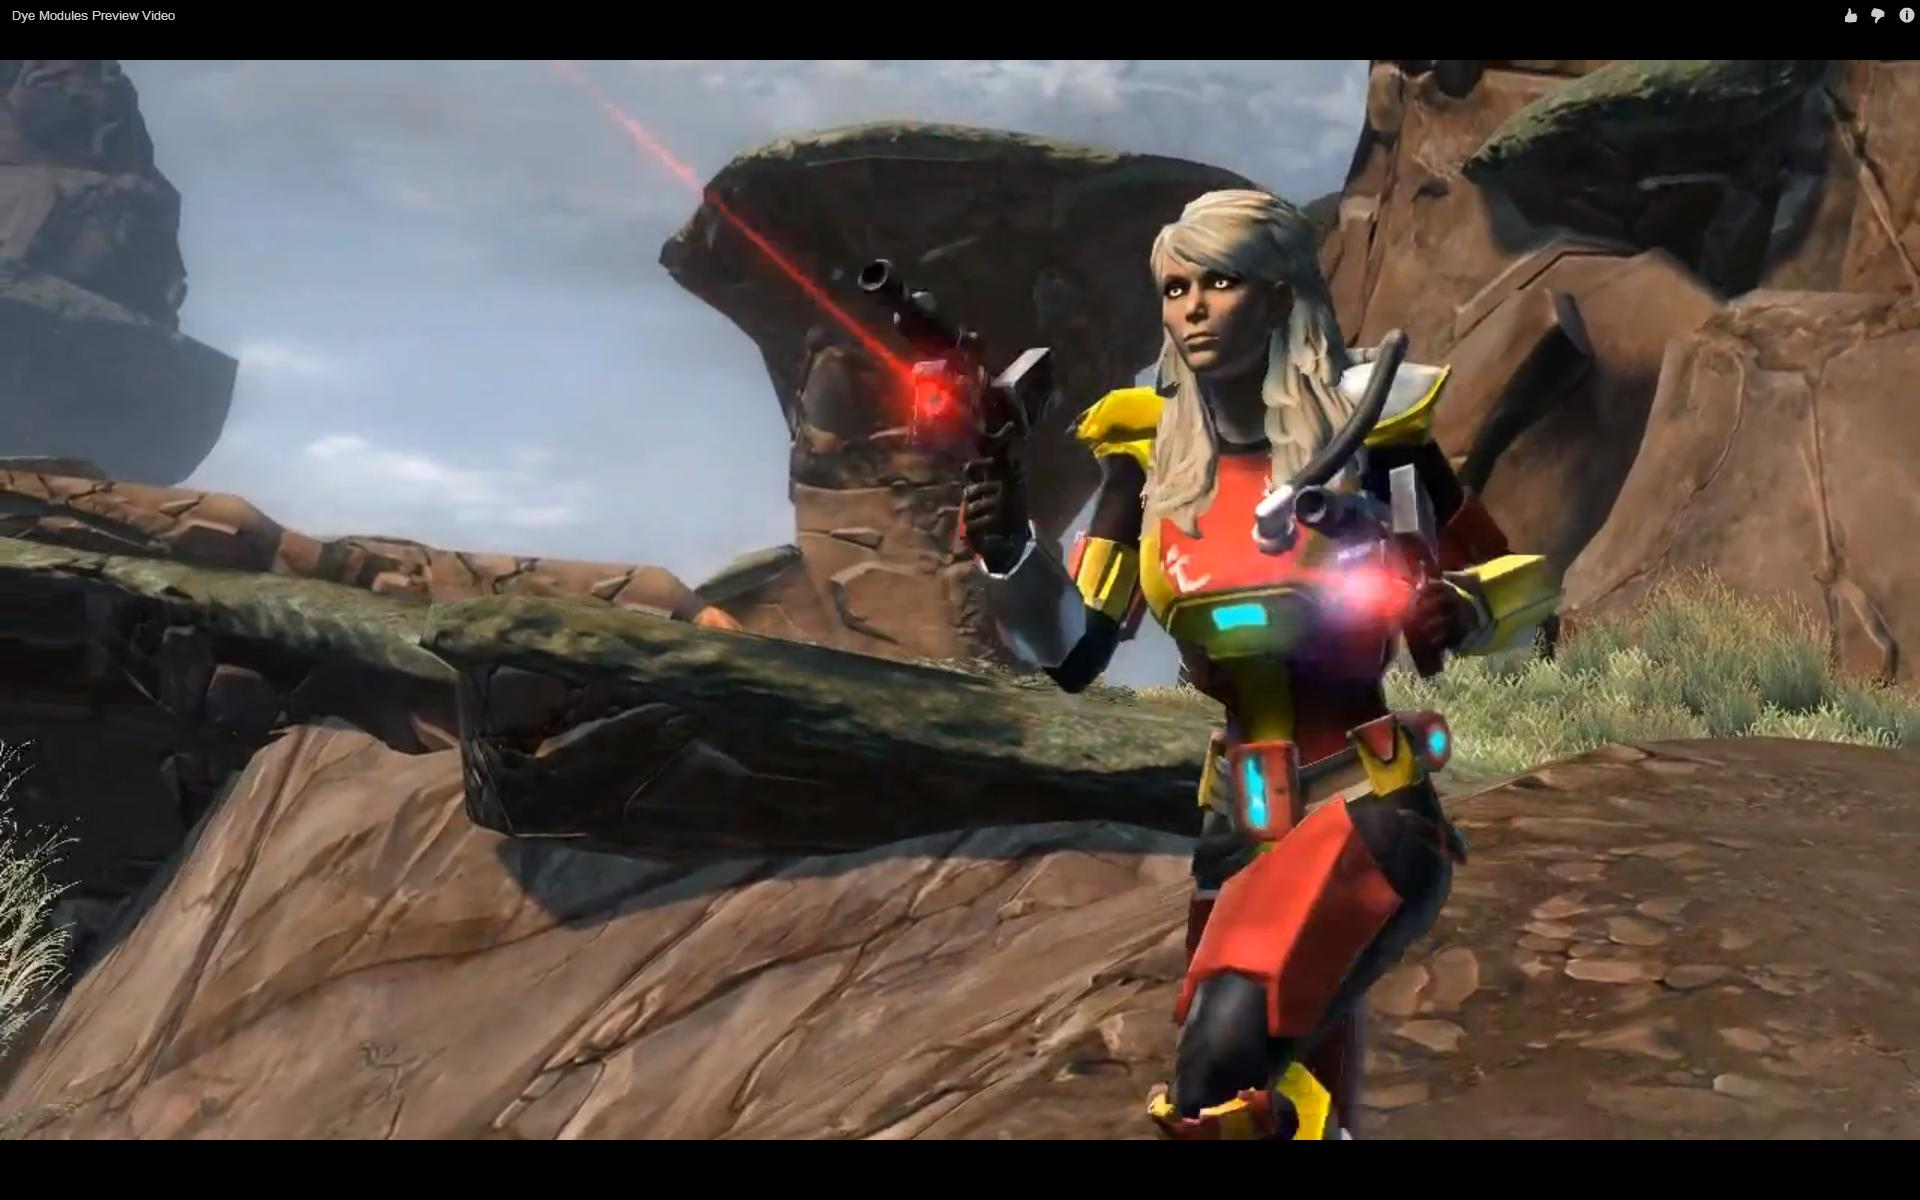 swtor new hair style